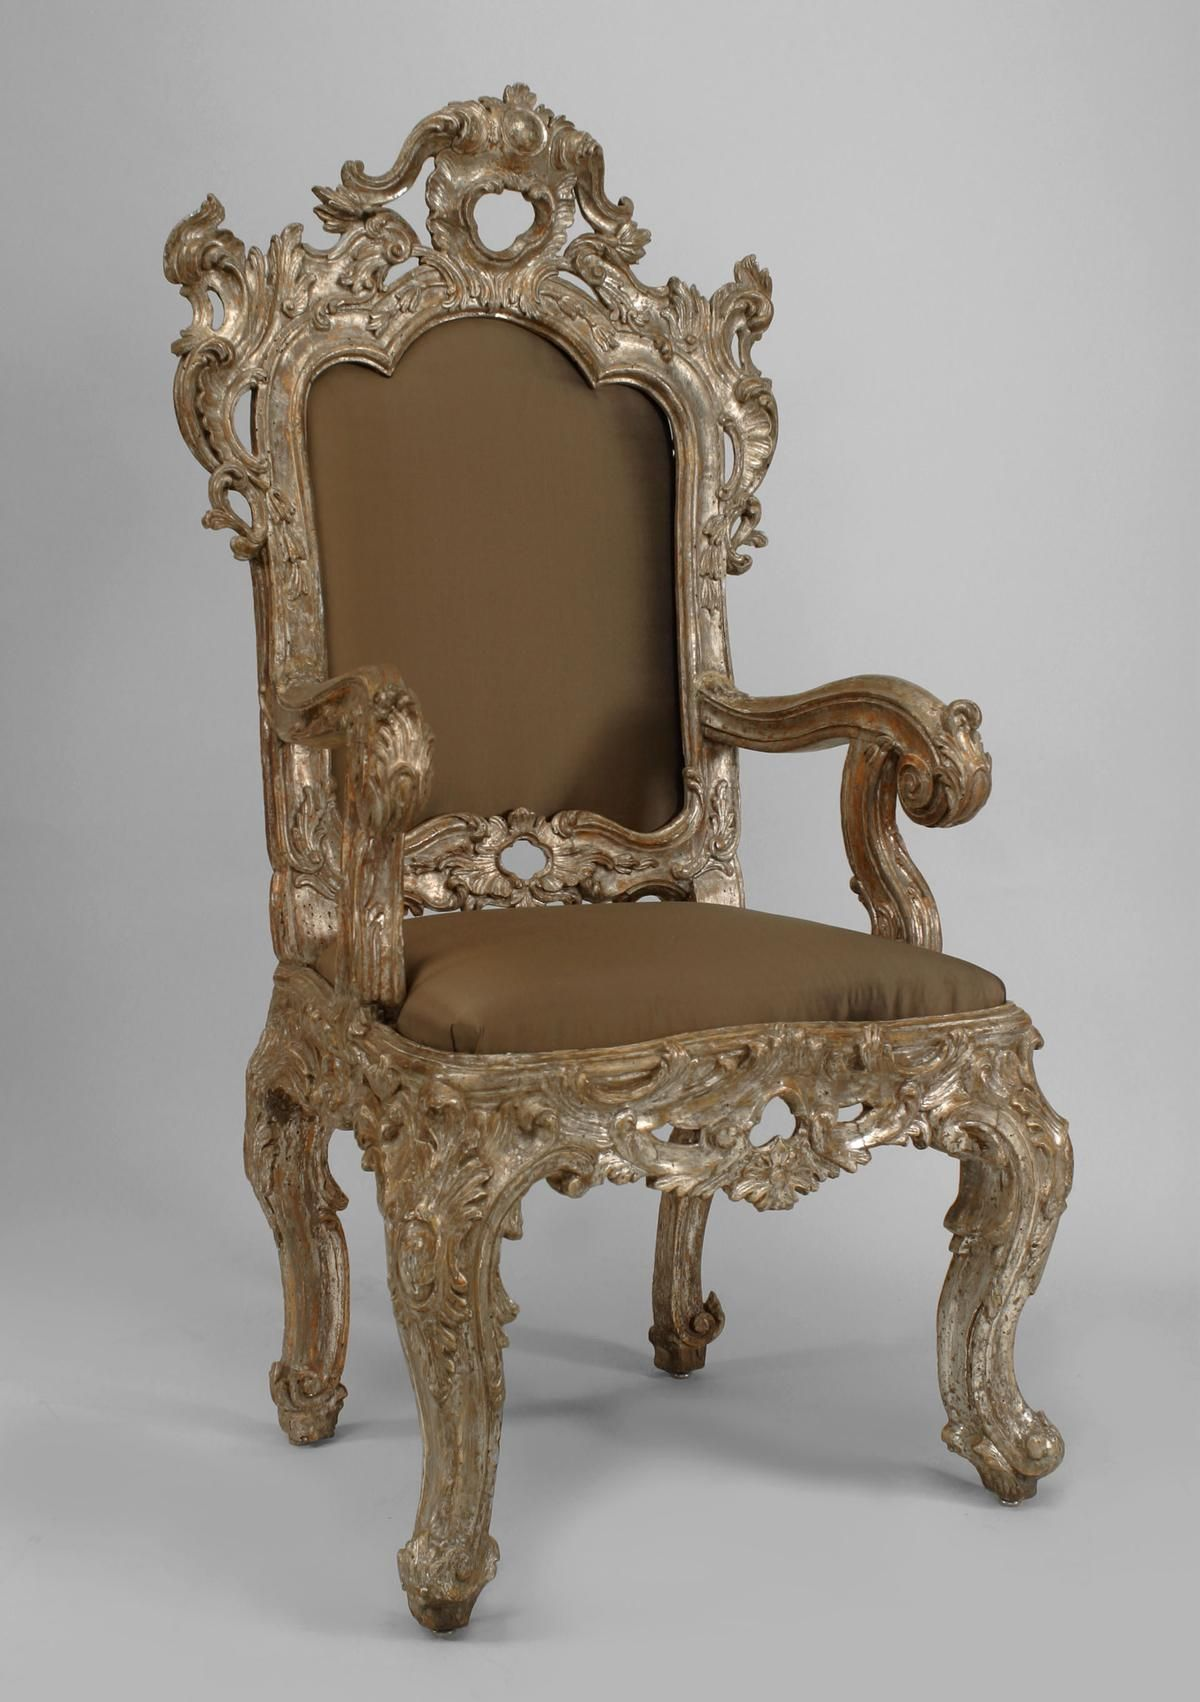 Pair of antique Italian Rococo high back silver-gilt carved throne chairs  with beige upholstered seat and back panels. $75,000.00 USD - Pair Of Antique Italian Rococo High Back Silver-gilt Carved Throne